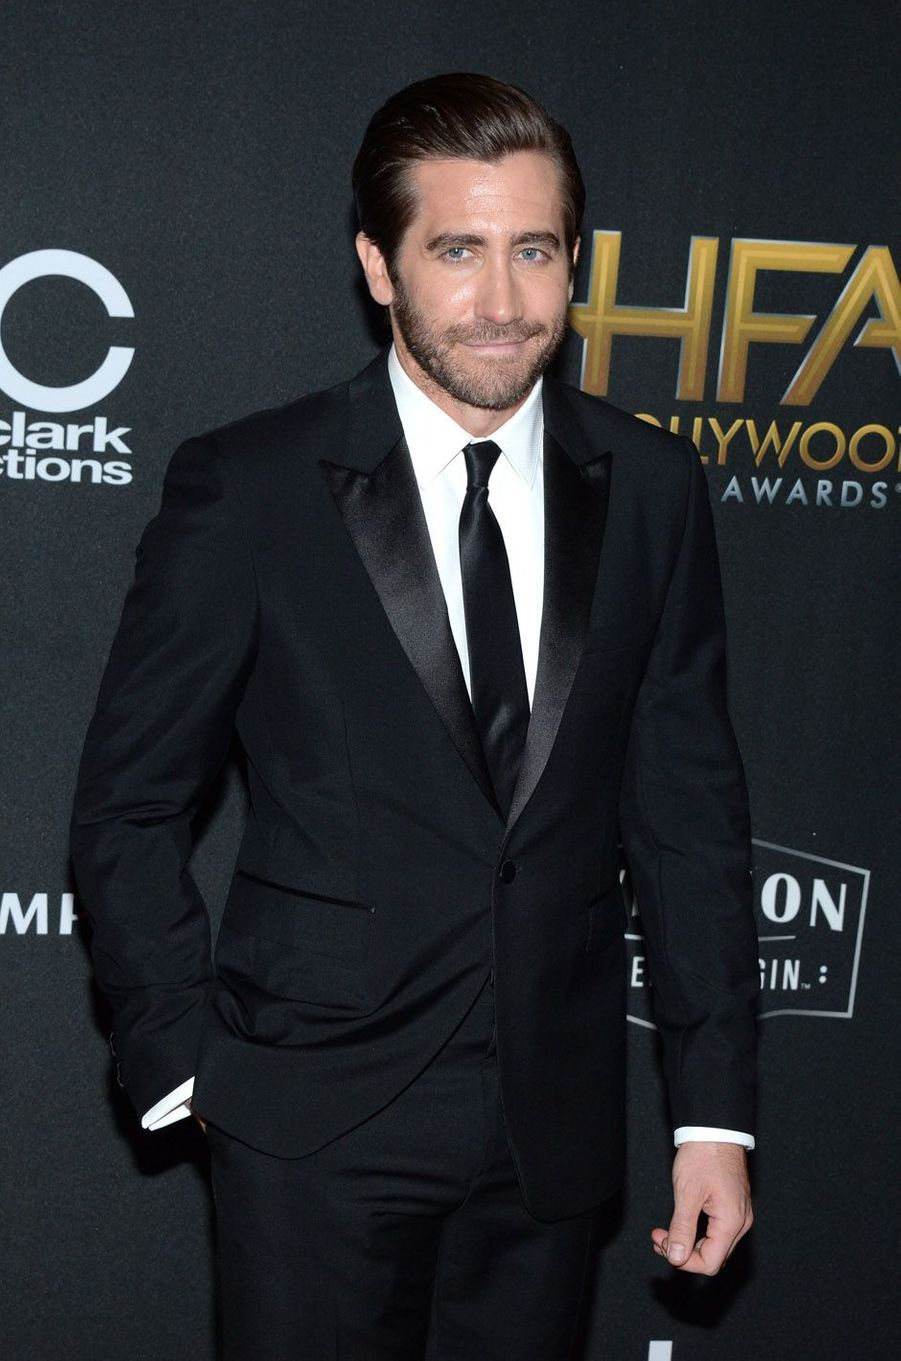 Jake Gyllenhaal à la cérémonie des Hollywood Film Awards à Beverly Hills, le 5 novembre 2017.